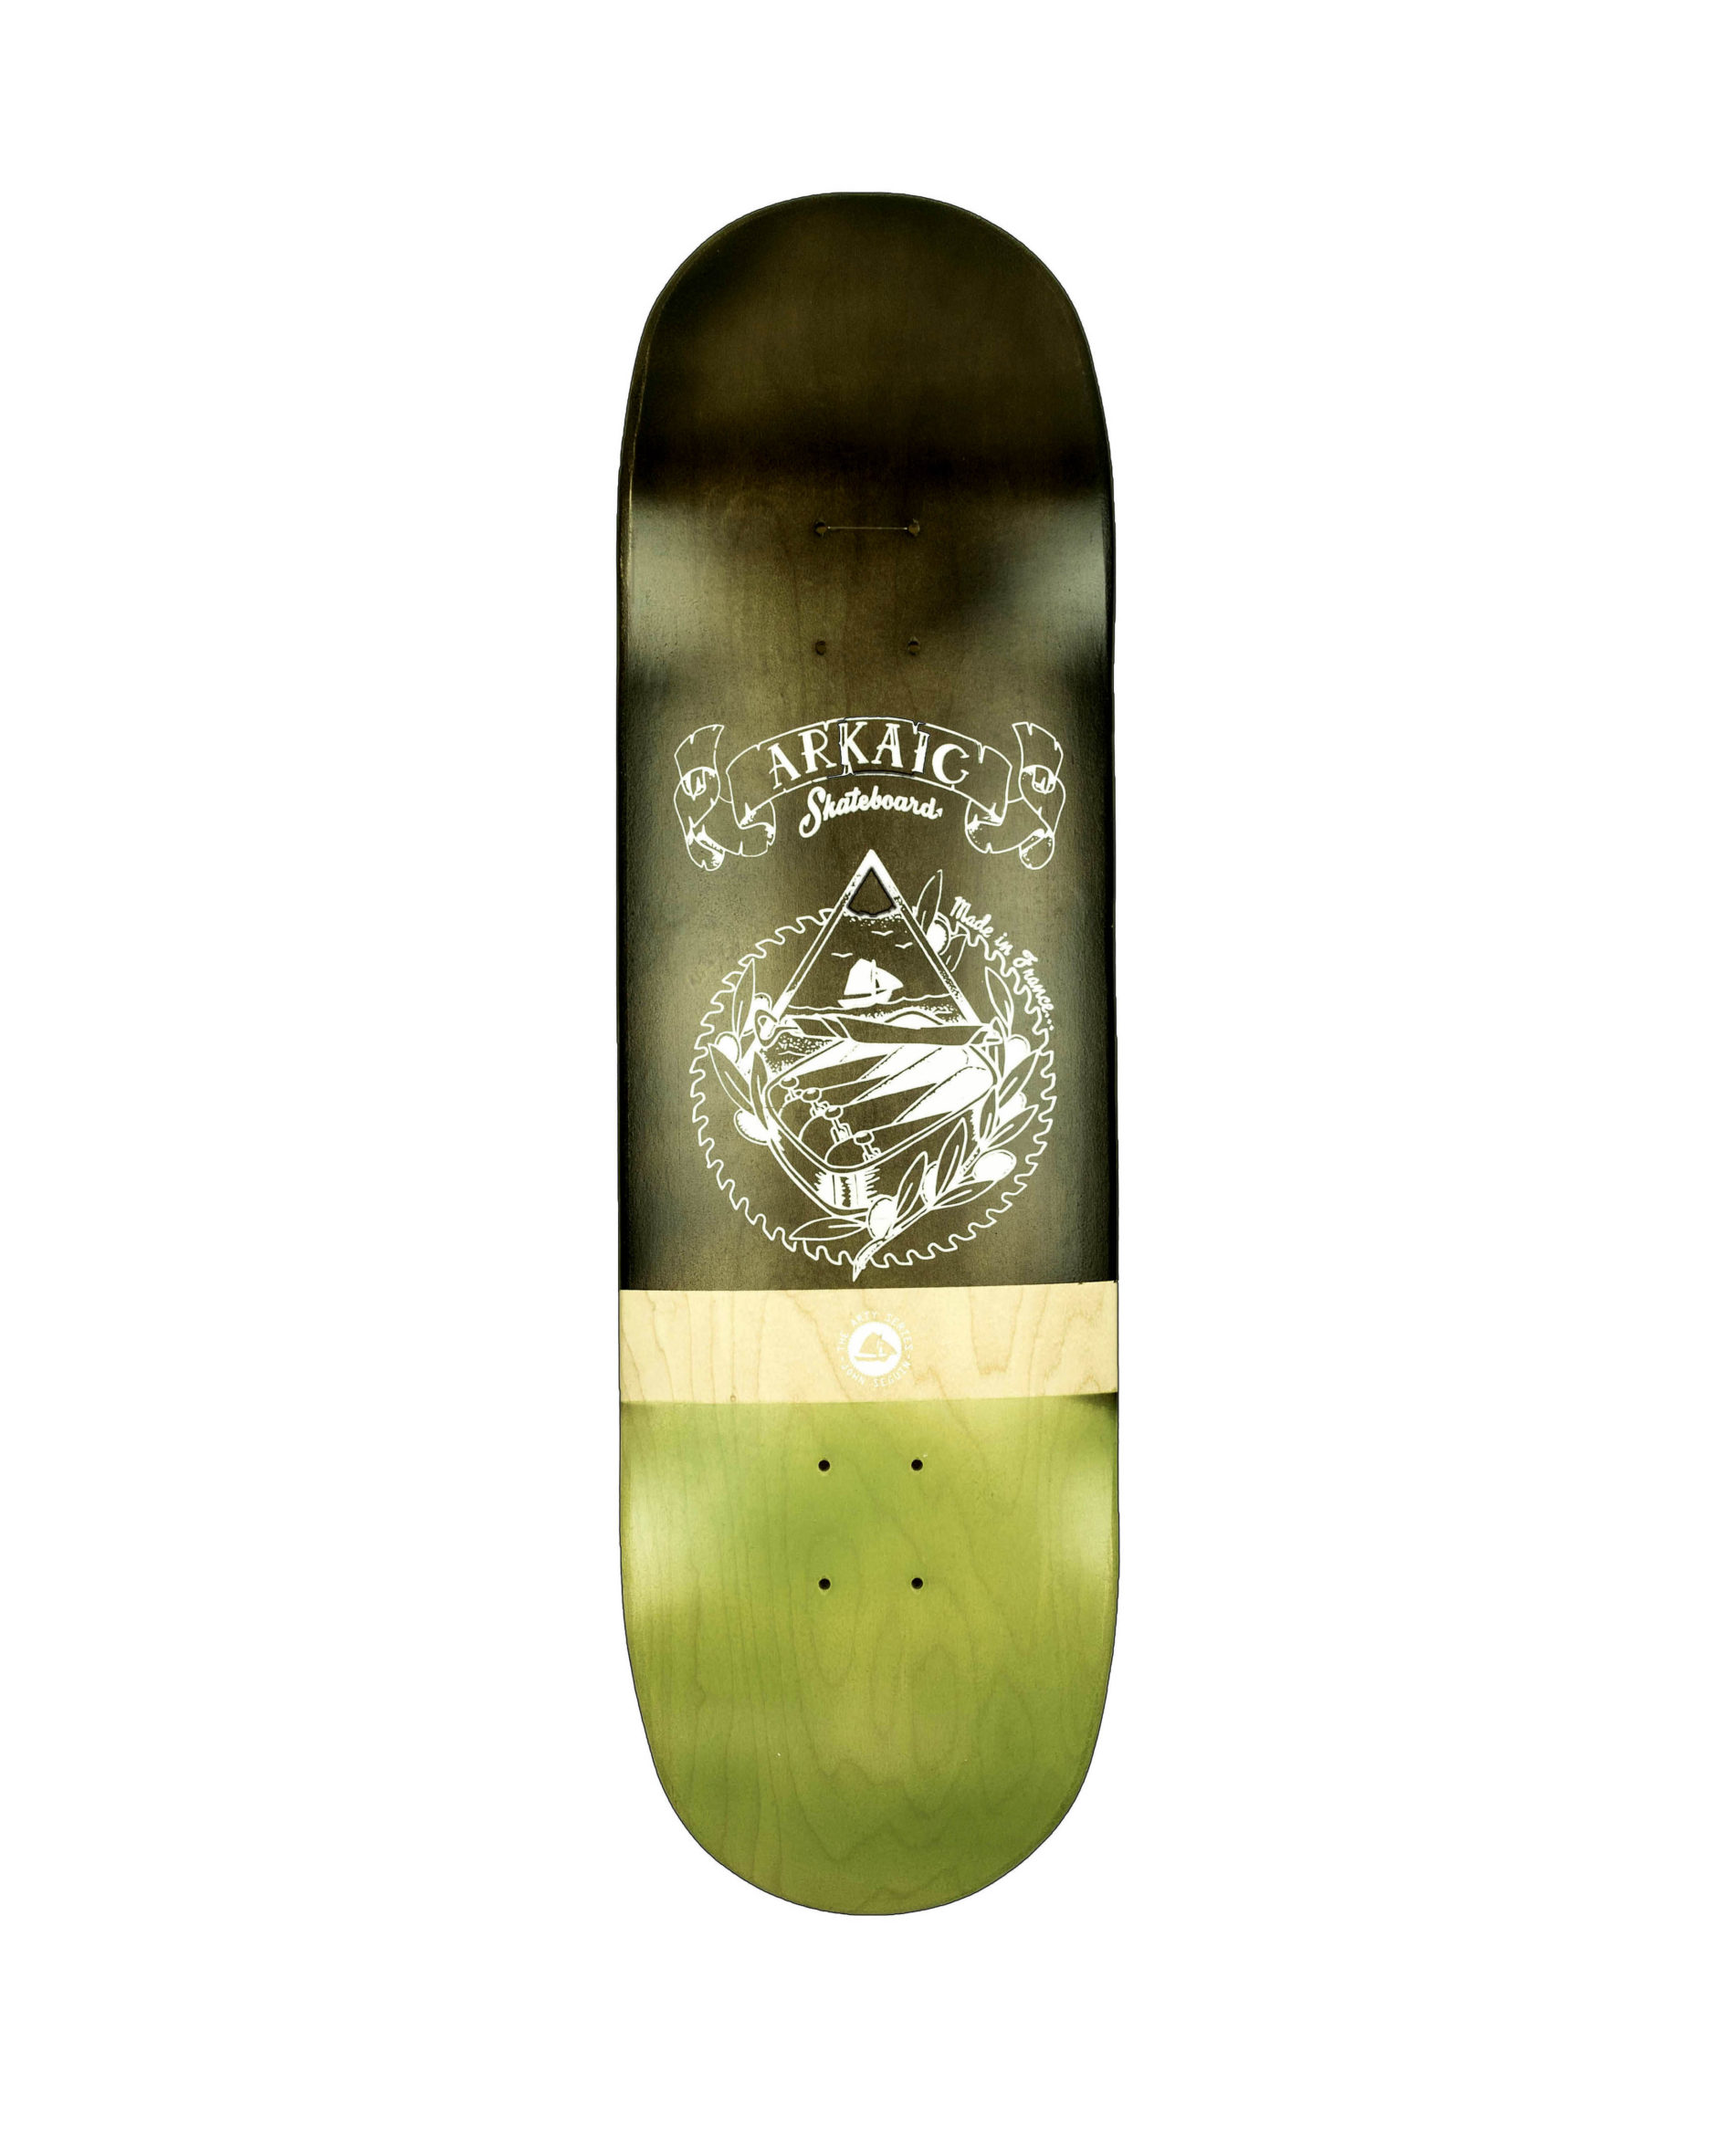 "Classical FAT XXL 8,8"" SkateShop Lyon Street Arkaic Skateboard"